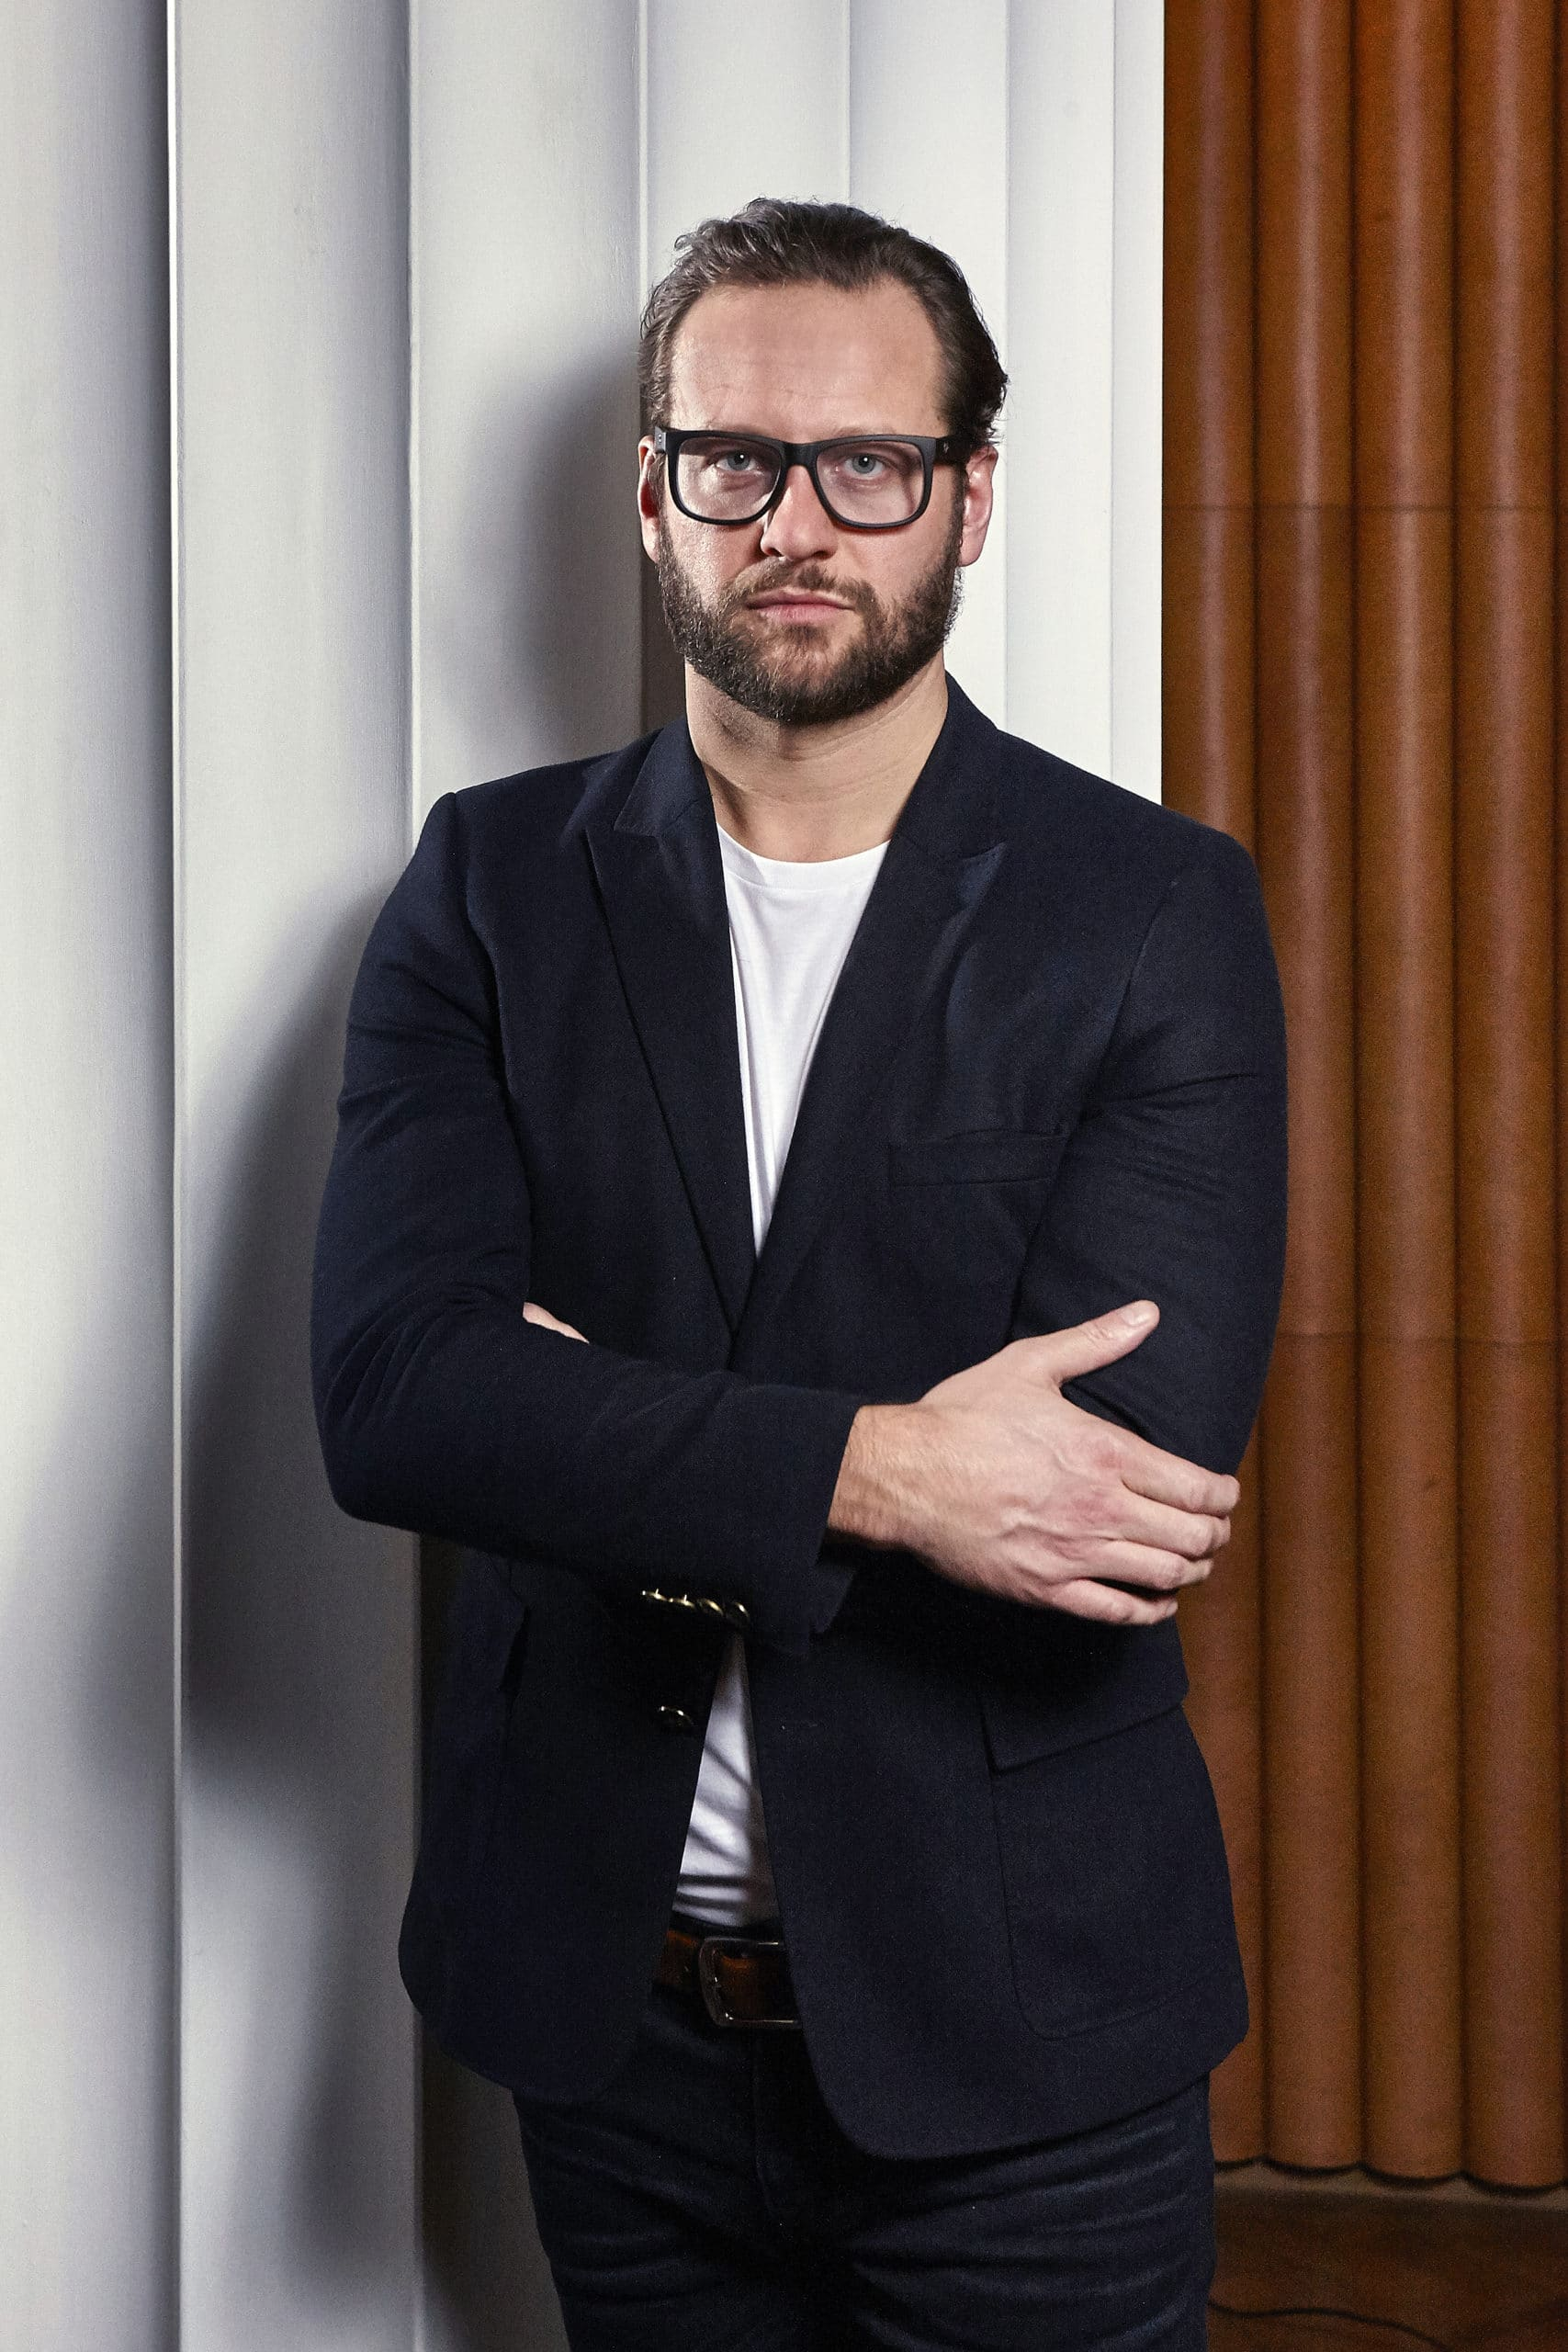 Profile picture of Elliot March standing with his arms crossed. Man wearing glasses, navy suit jacket, and white T-shirt.